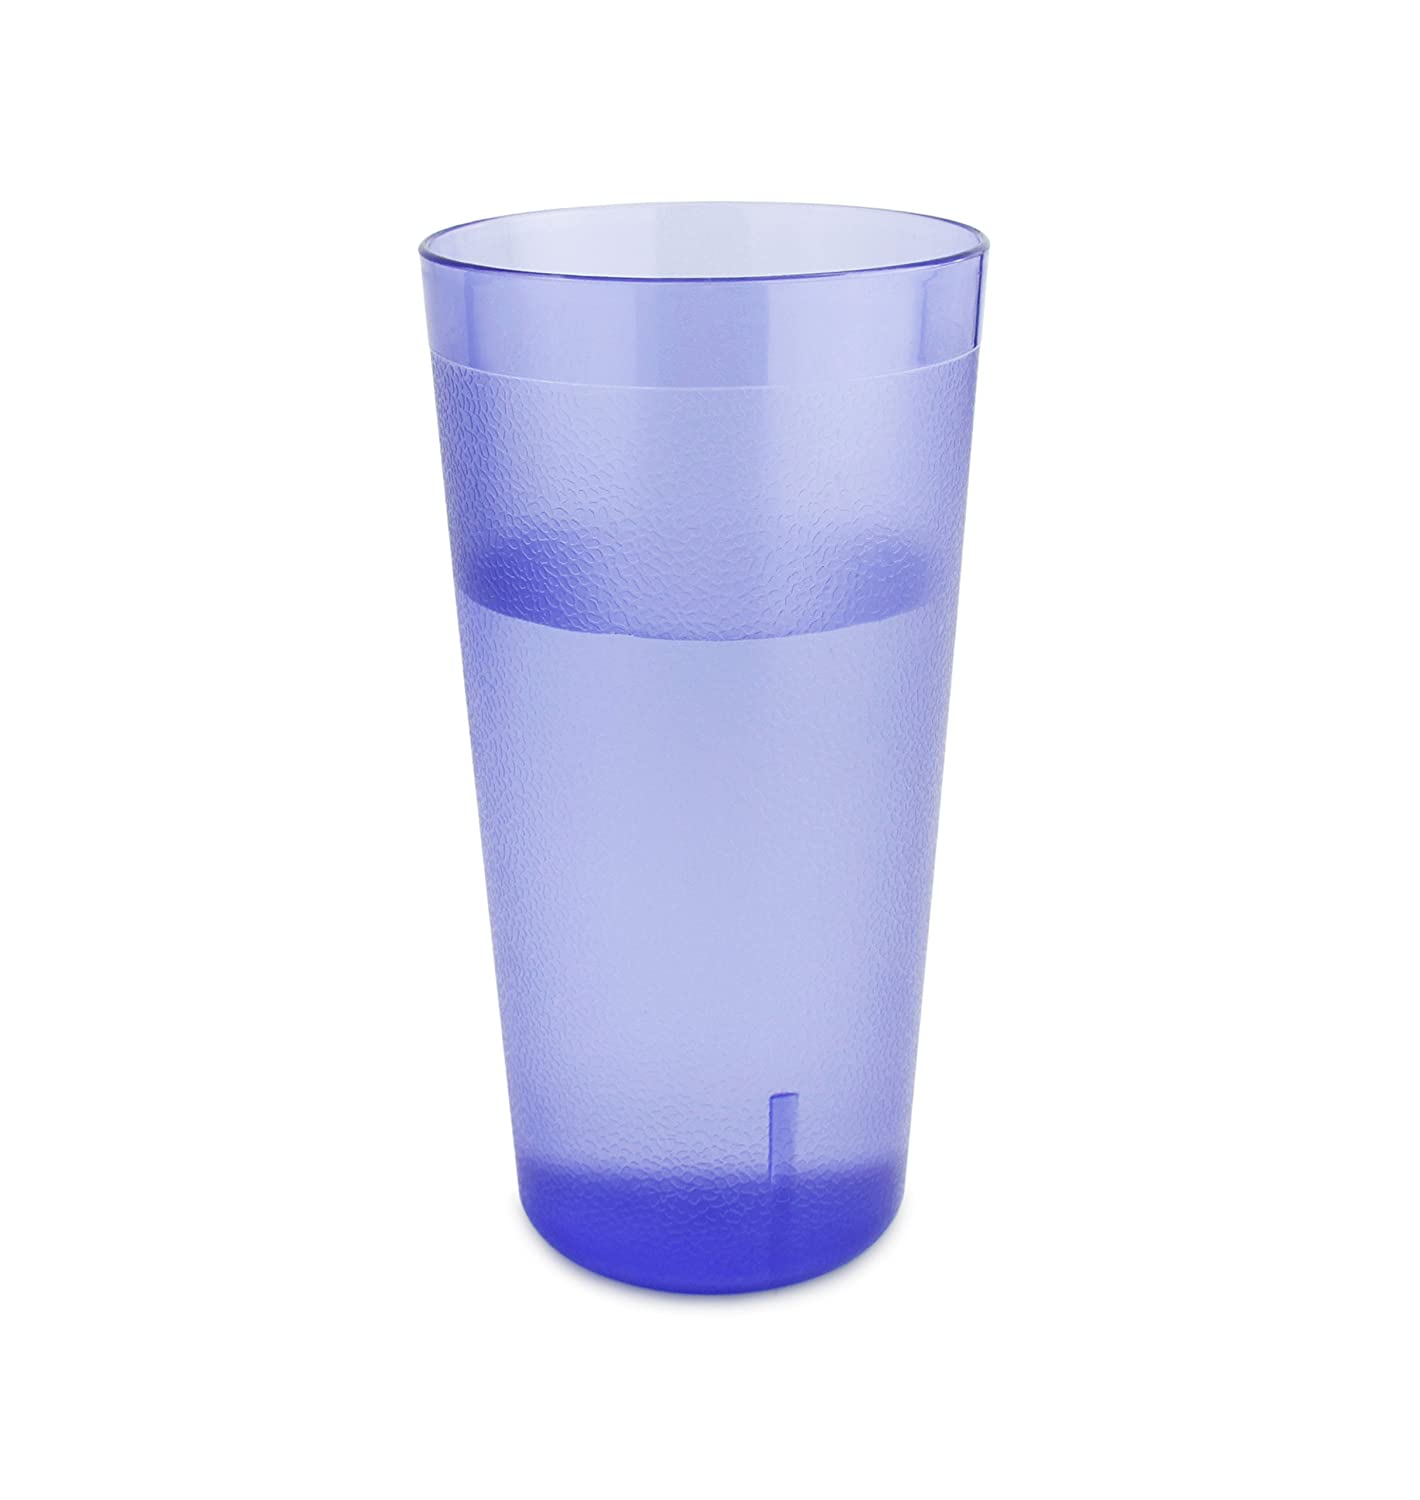 New Star Foodservice 46441 Tumbler Beverage Cups, Restaurant Quality, Plastic, 20 oz, Blue, Set of 12